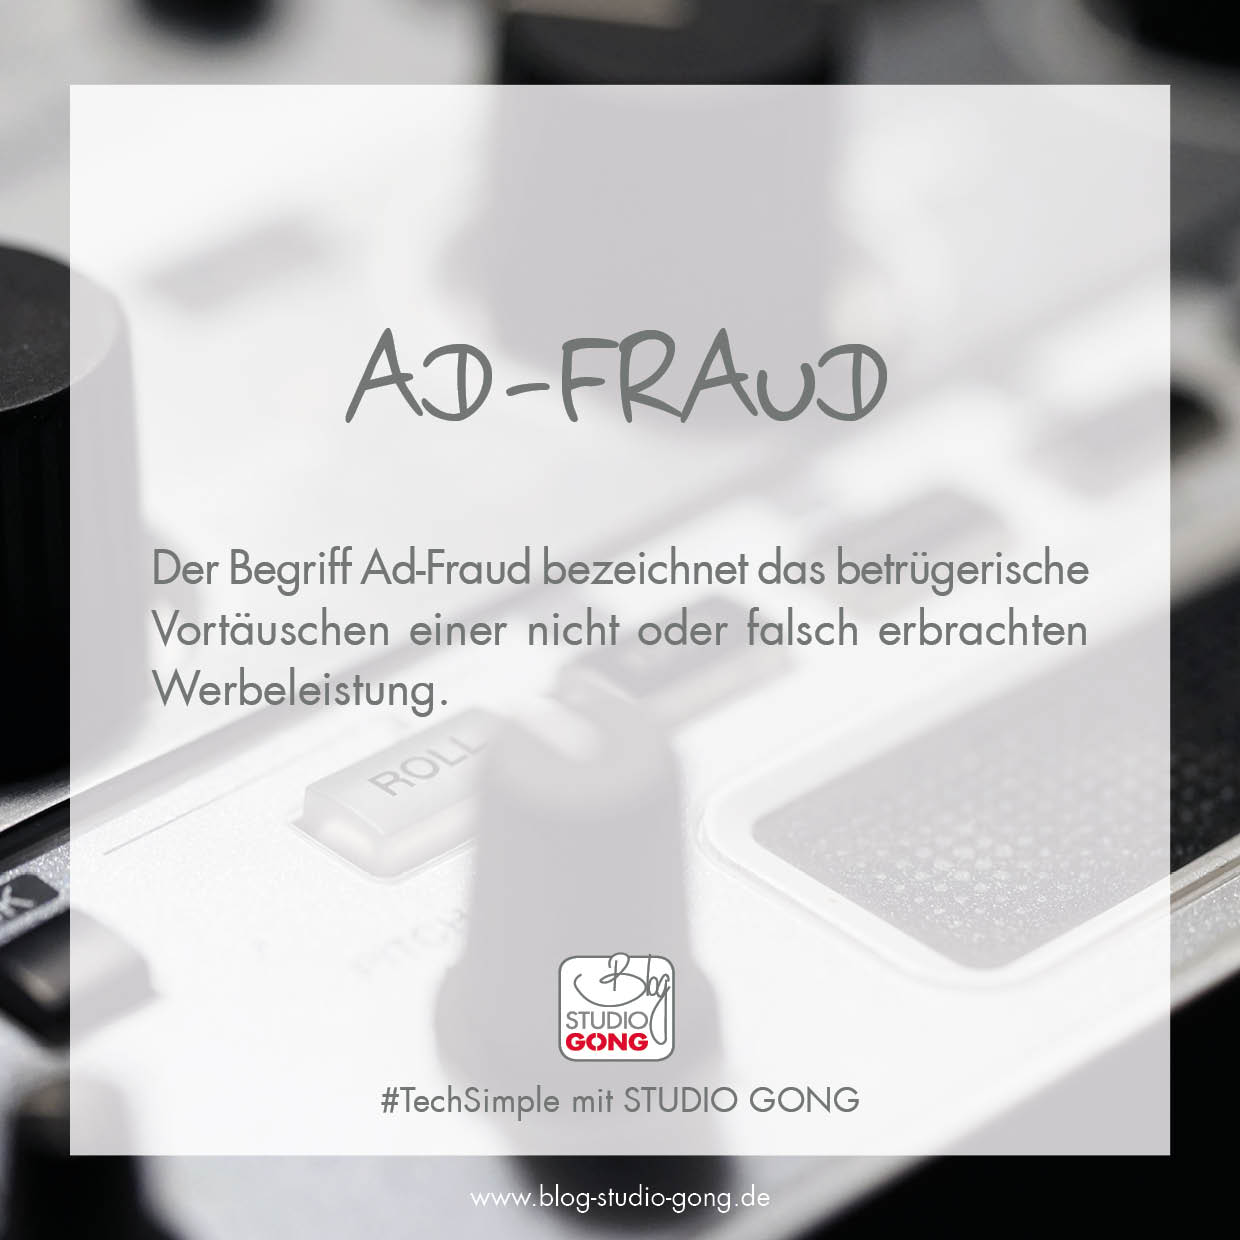 #TechSimple - Ad-Fraud